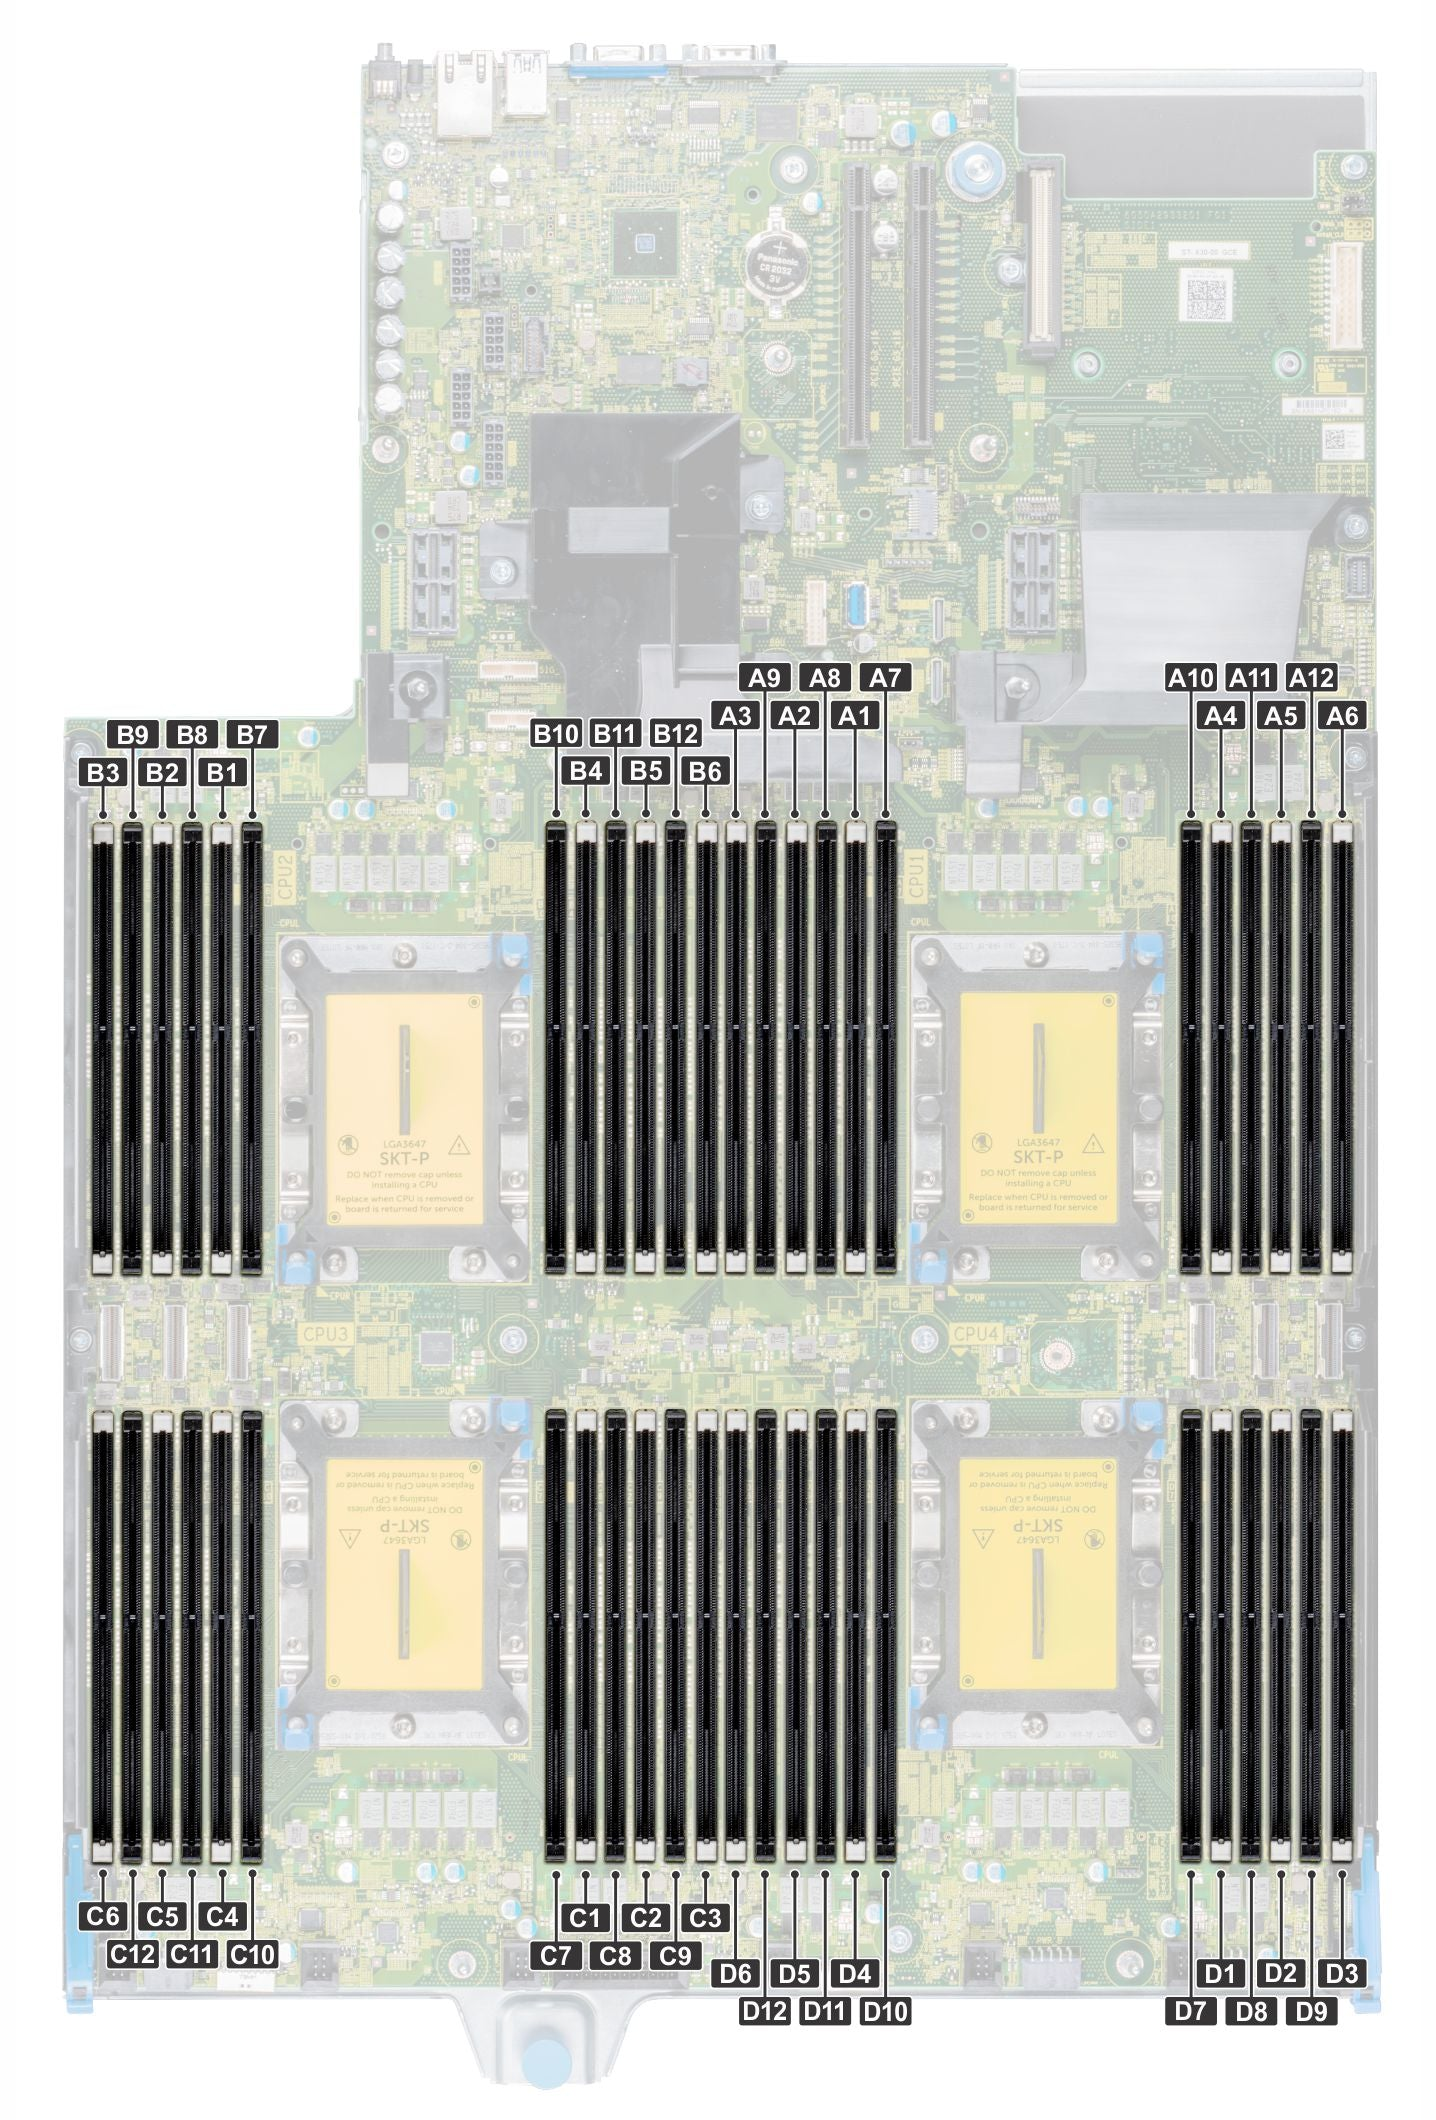 Dell PowerEdge R840 Memory Configuration